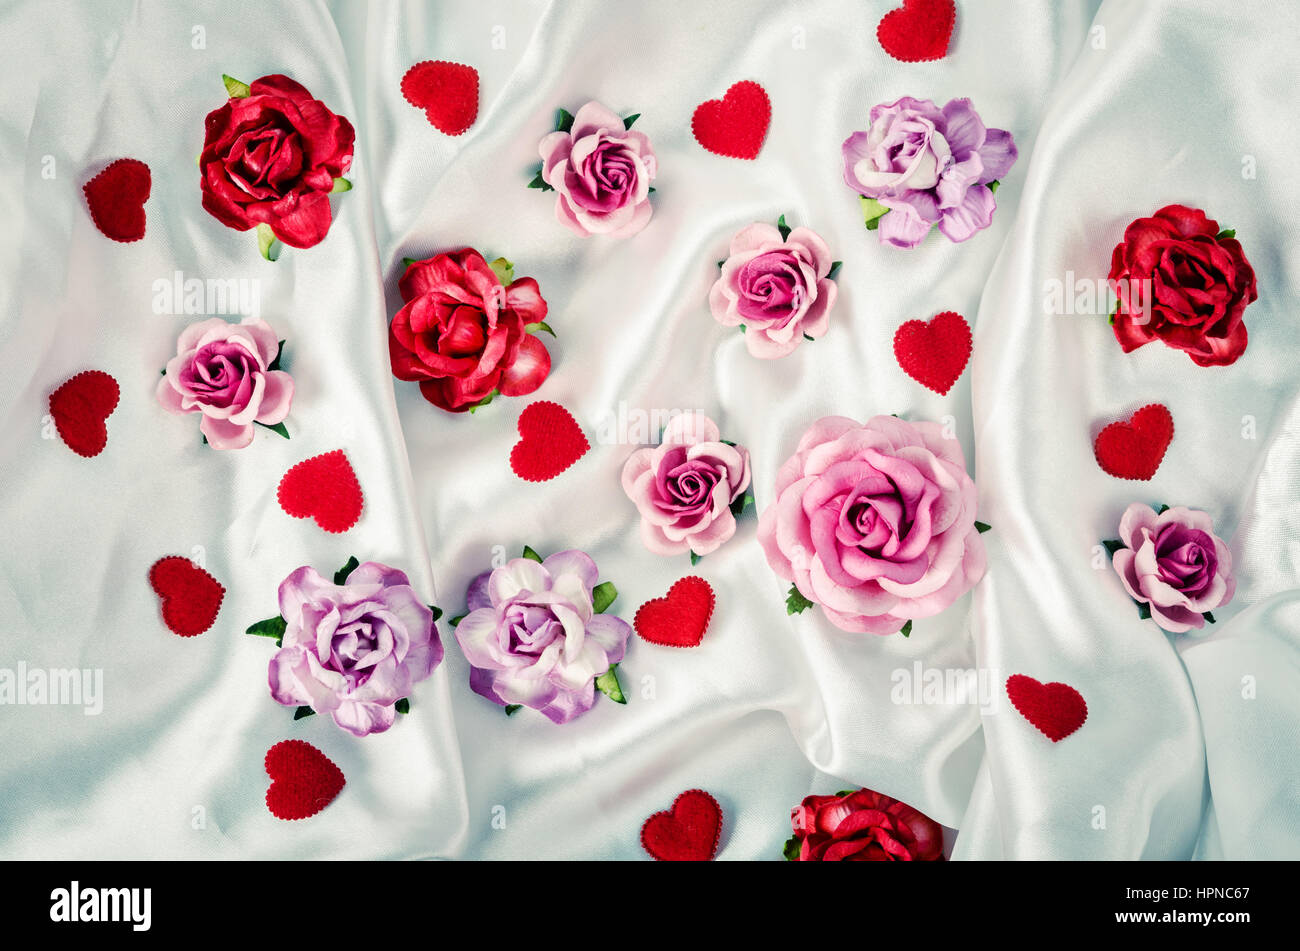 Many Of Roses And Red Heart On Elegant White Fabric Background Stock